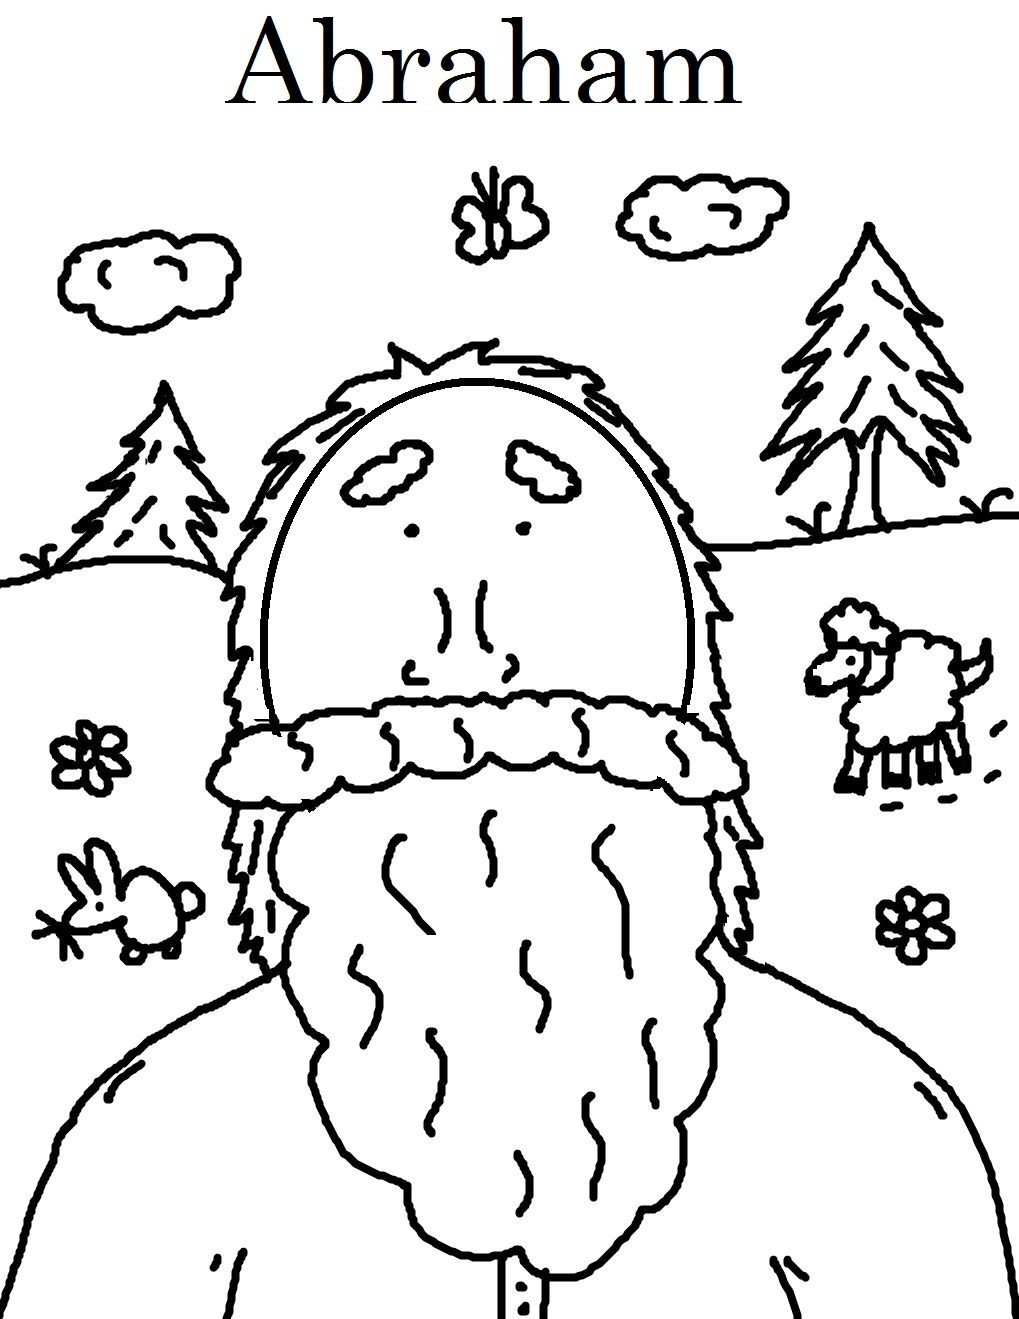 Old Testament Bible Story Coloring Pages - Abraham - 2